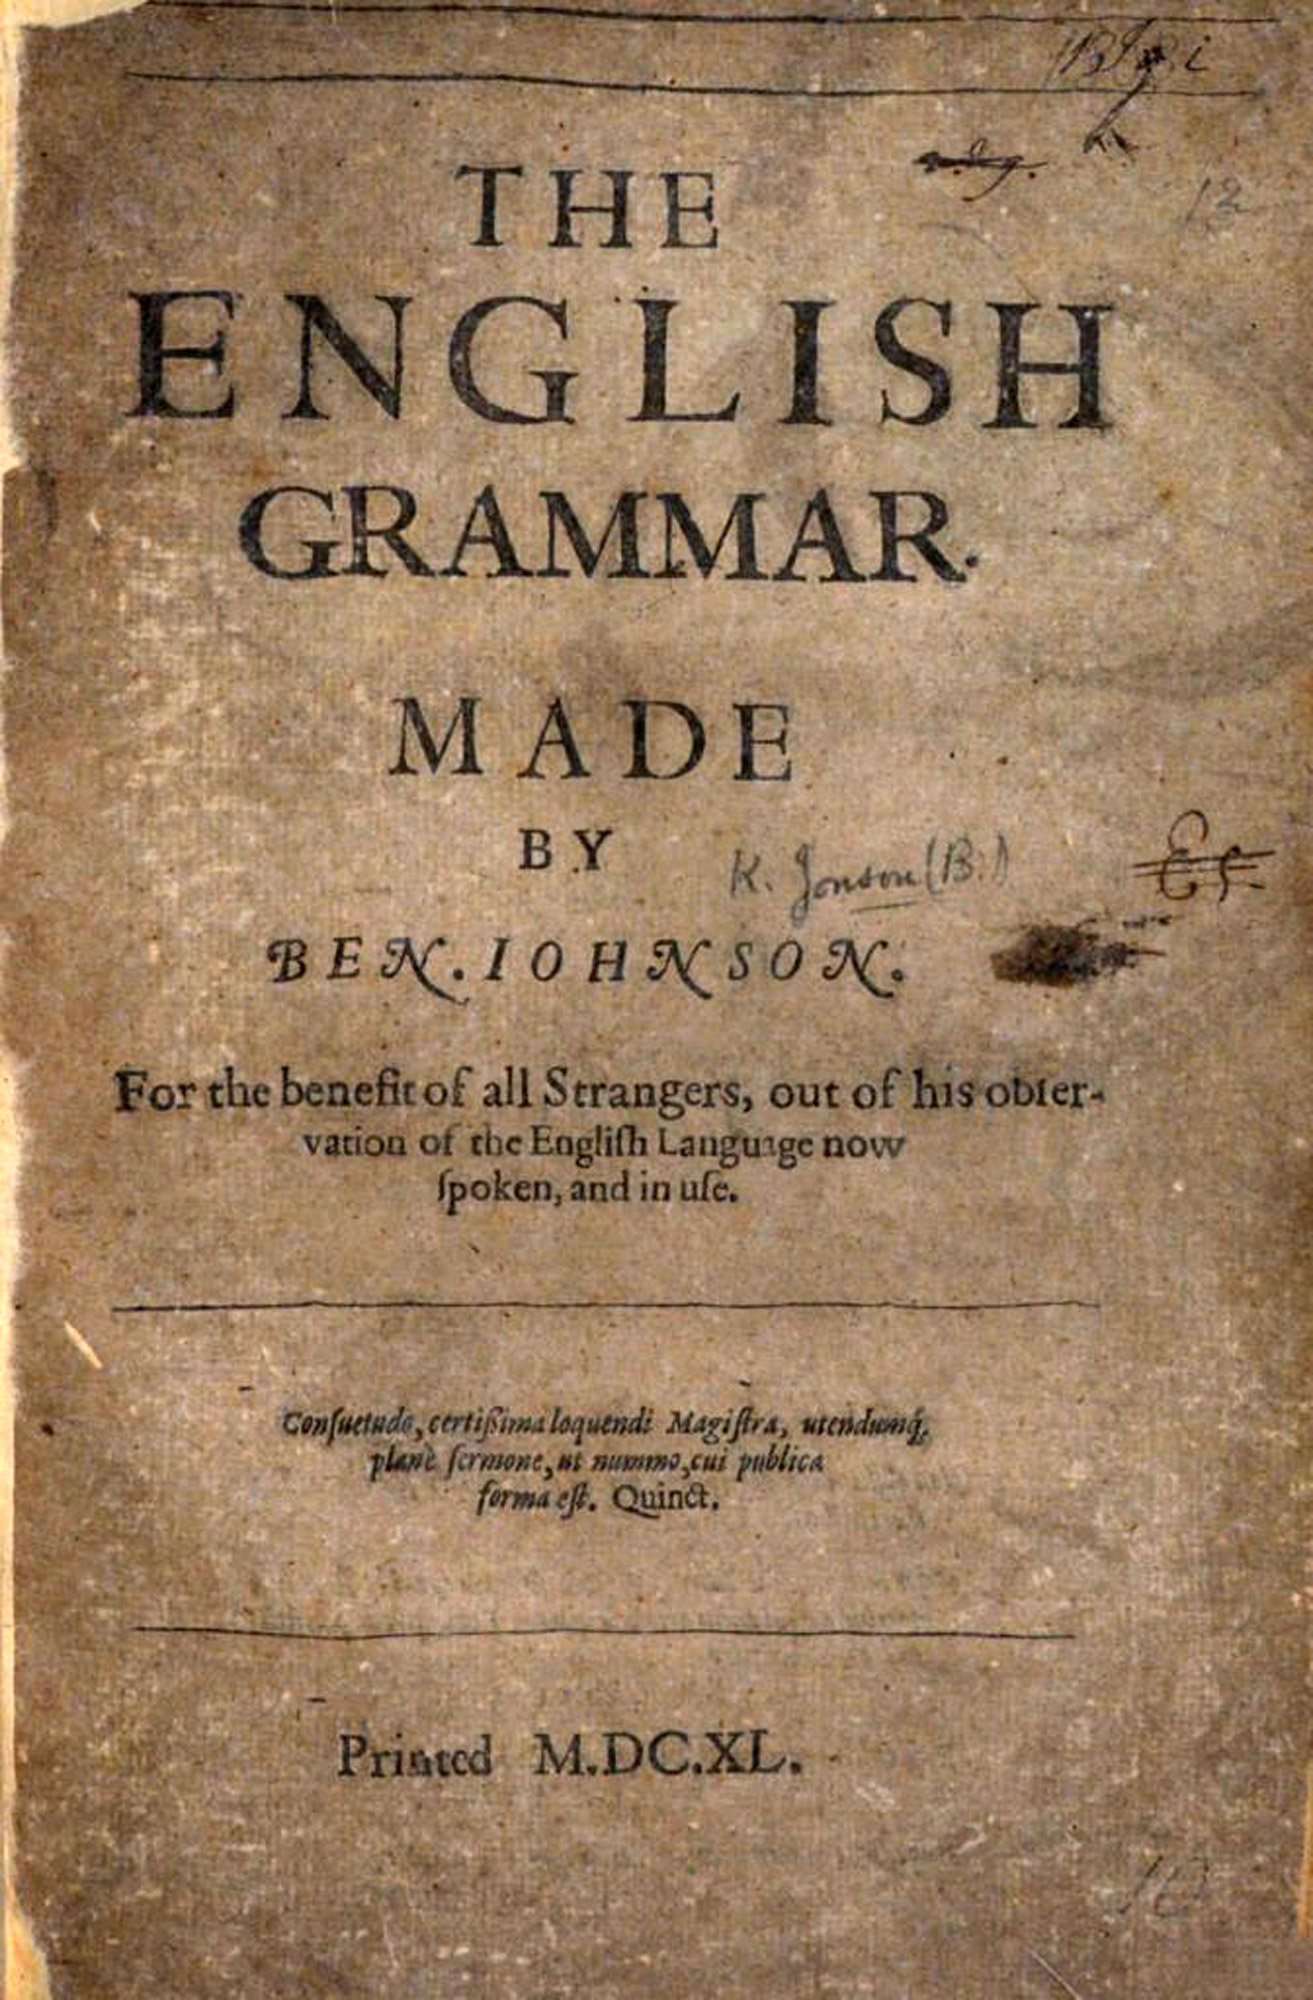 Ben Jonson's The English Grammar titlepage